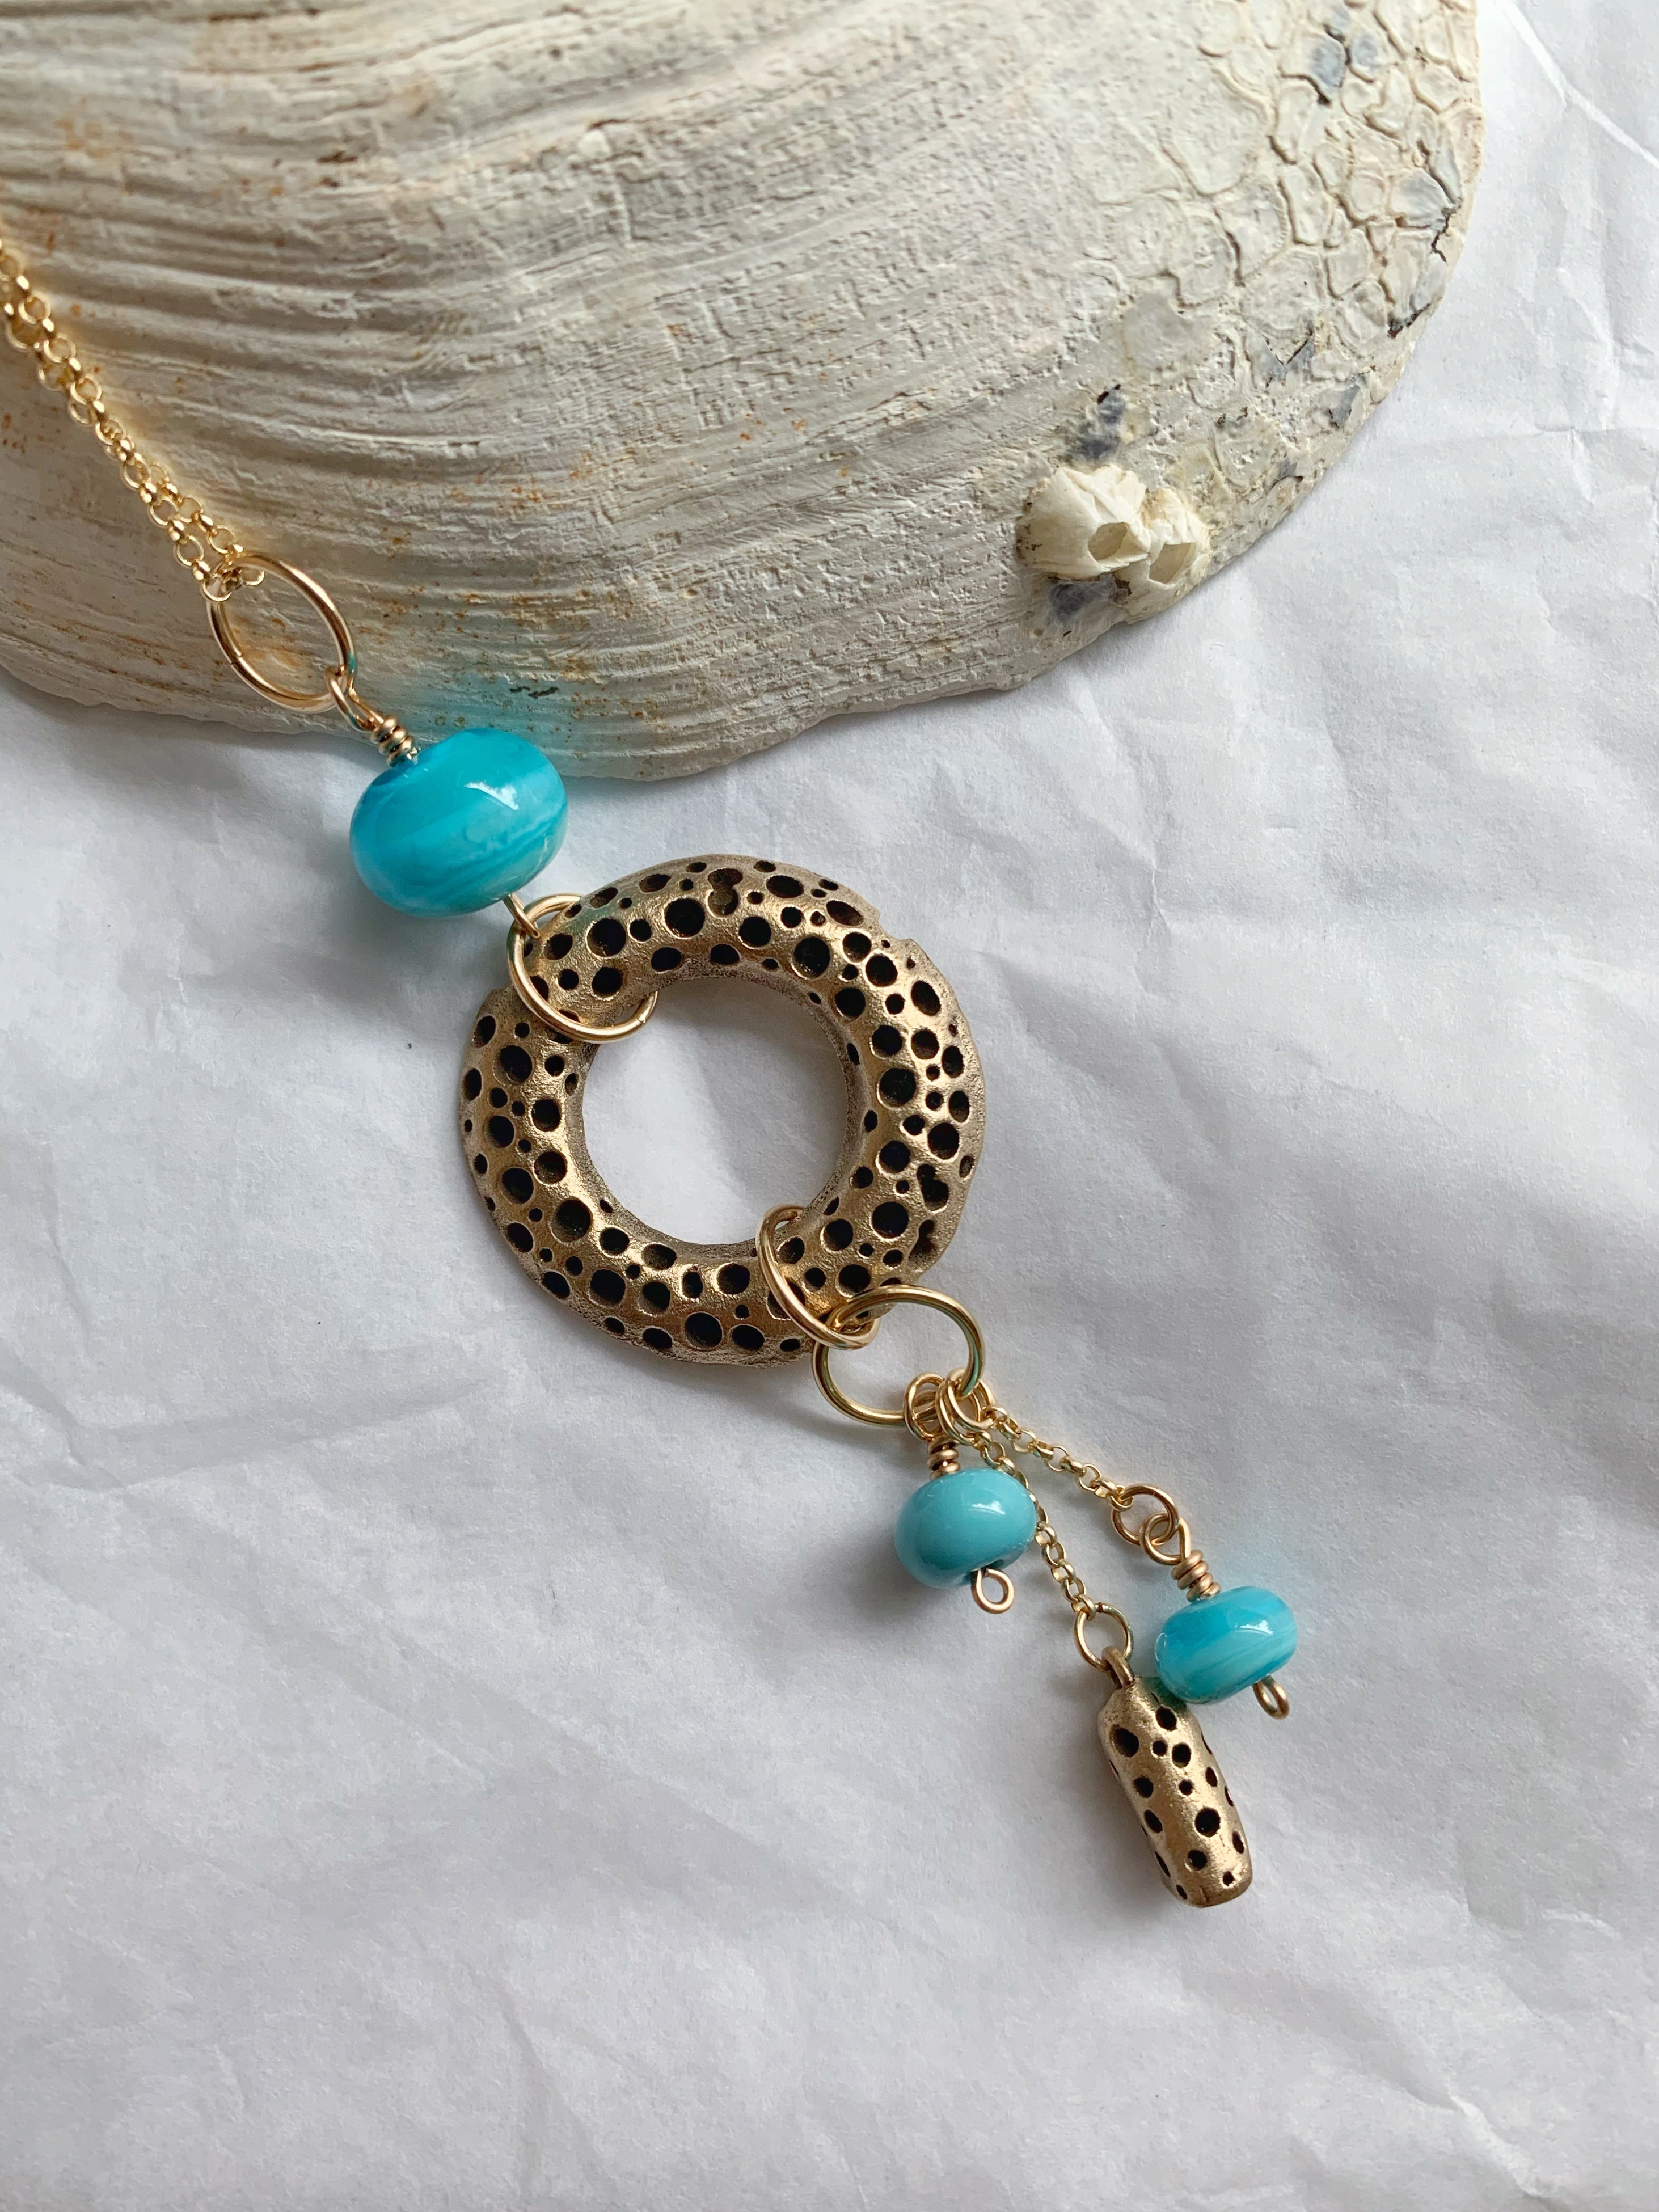 Ocean inspired bronze and glass statement necklace